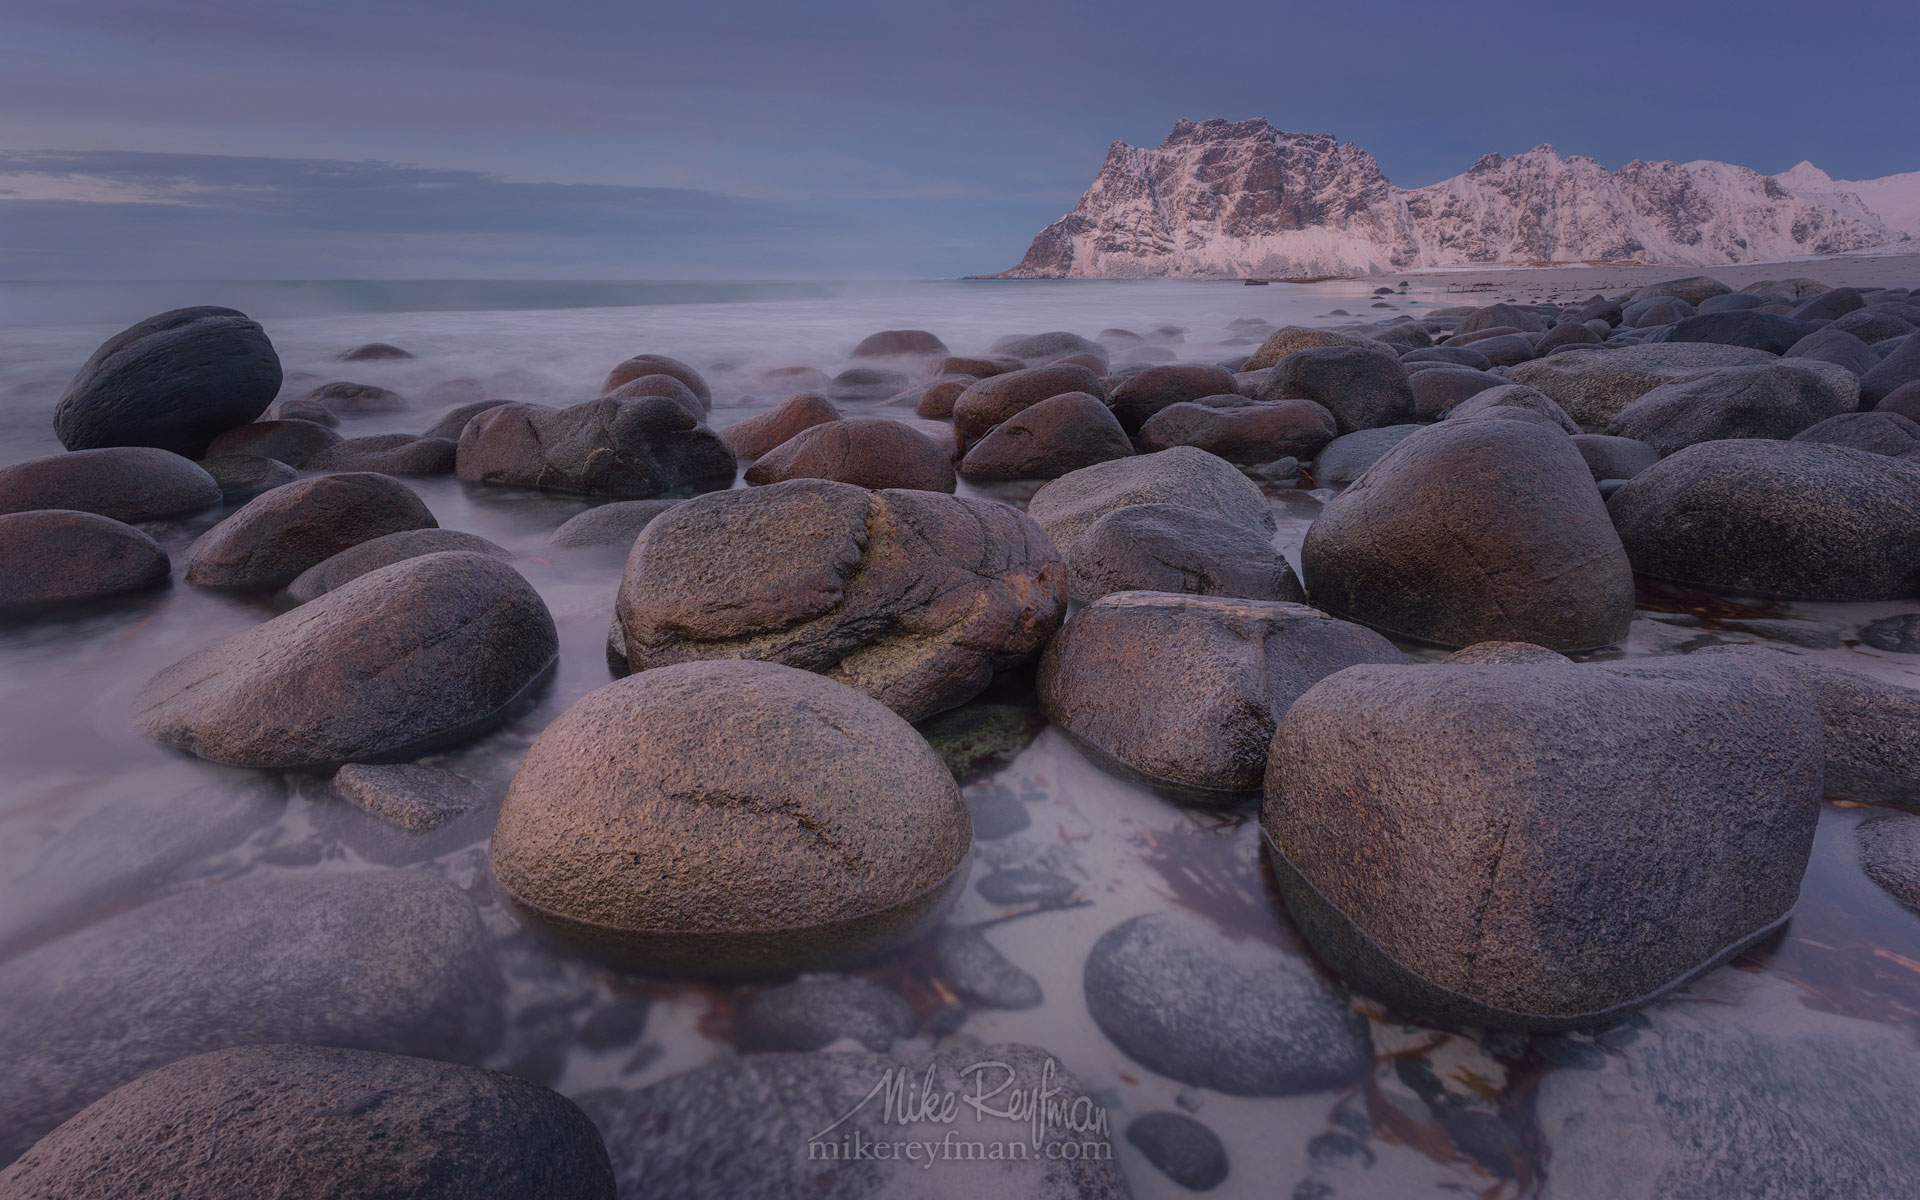 Round boulders on Utakleiv beach after sunset. Vestvagoy, Lofoten Islands, Norway LF-MRD1E2172 - Lofoten Archipelago in Winter, Arctic Norway - Mike Reyfman Photography